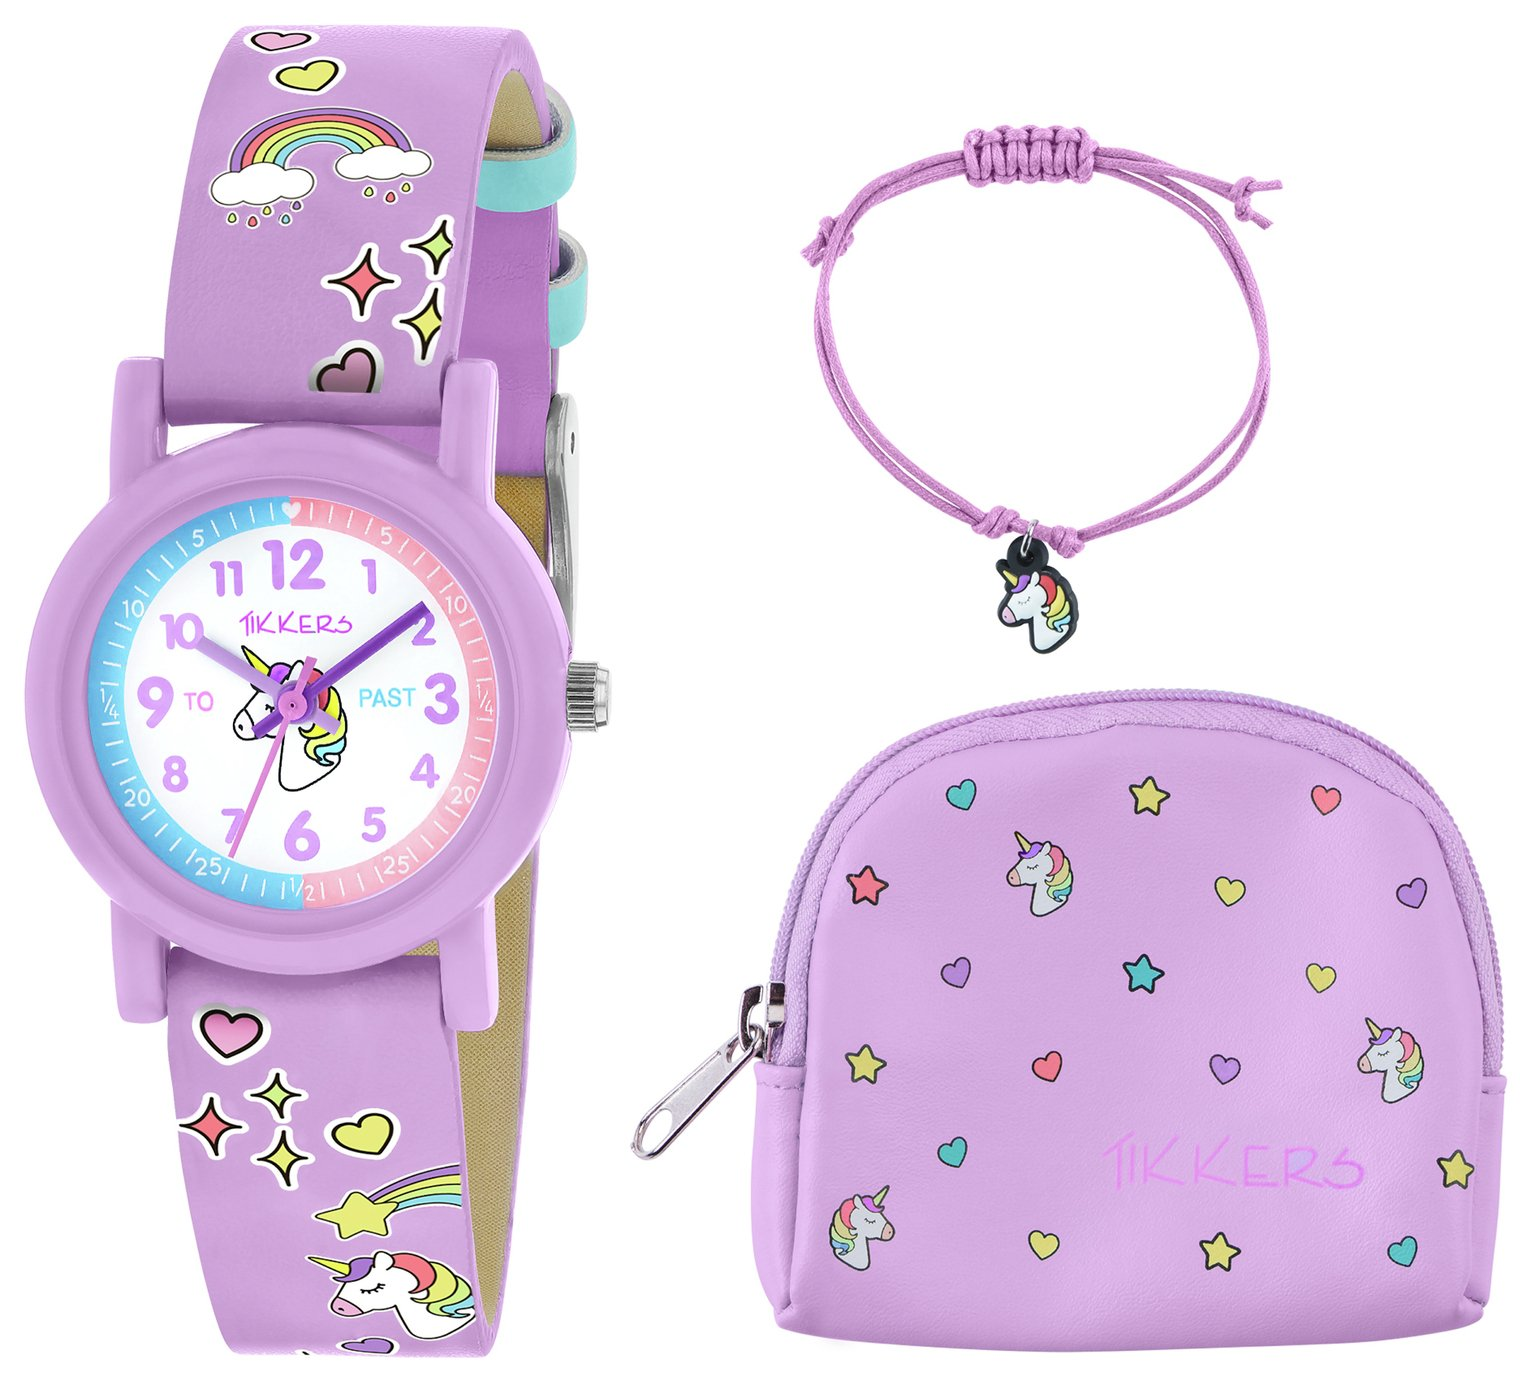 Tikkers Lilac Unicorn Watch, Necklace and Purse Set from Tikkers